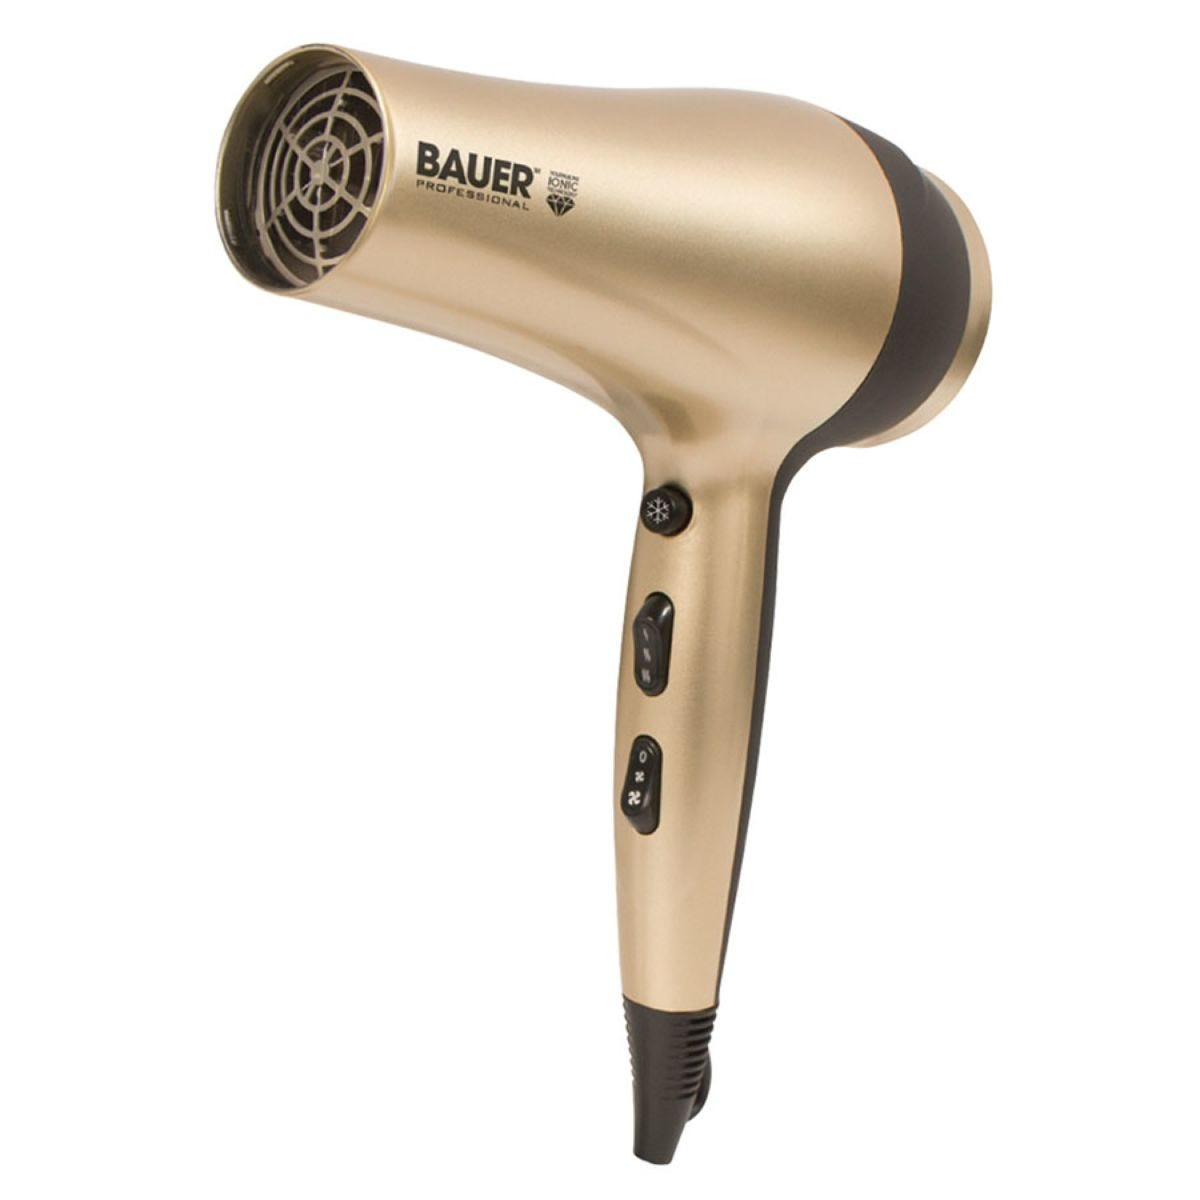 Bauer 38830 TourmaPro 2200W Ionic Hairdryer with Concentrator Nozzle - Gold